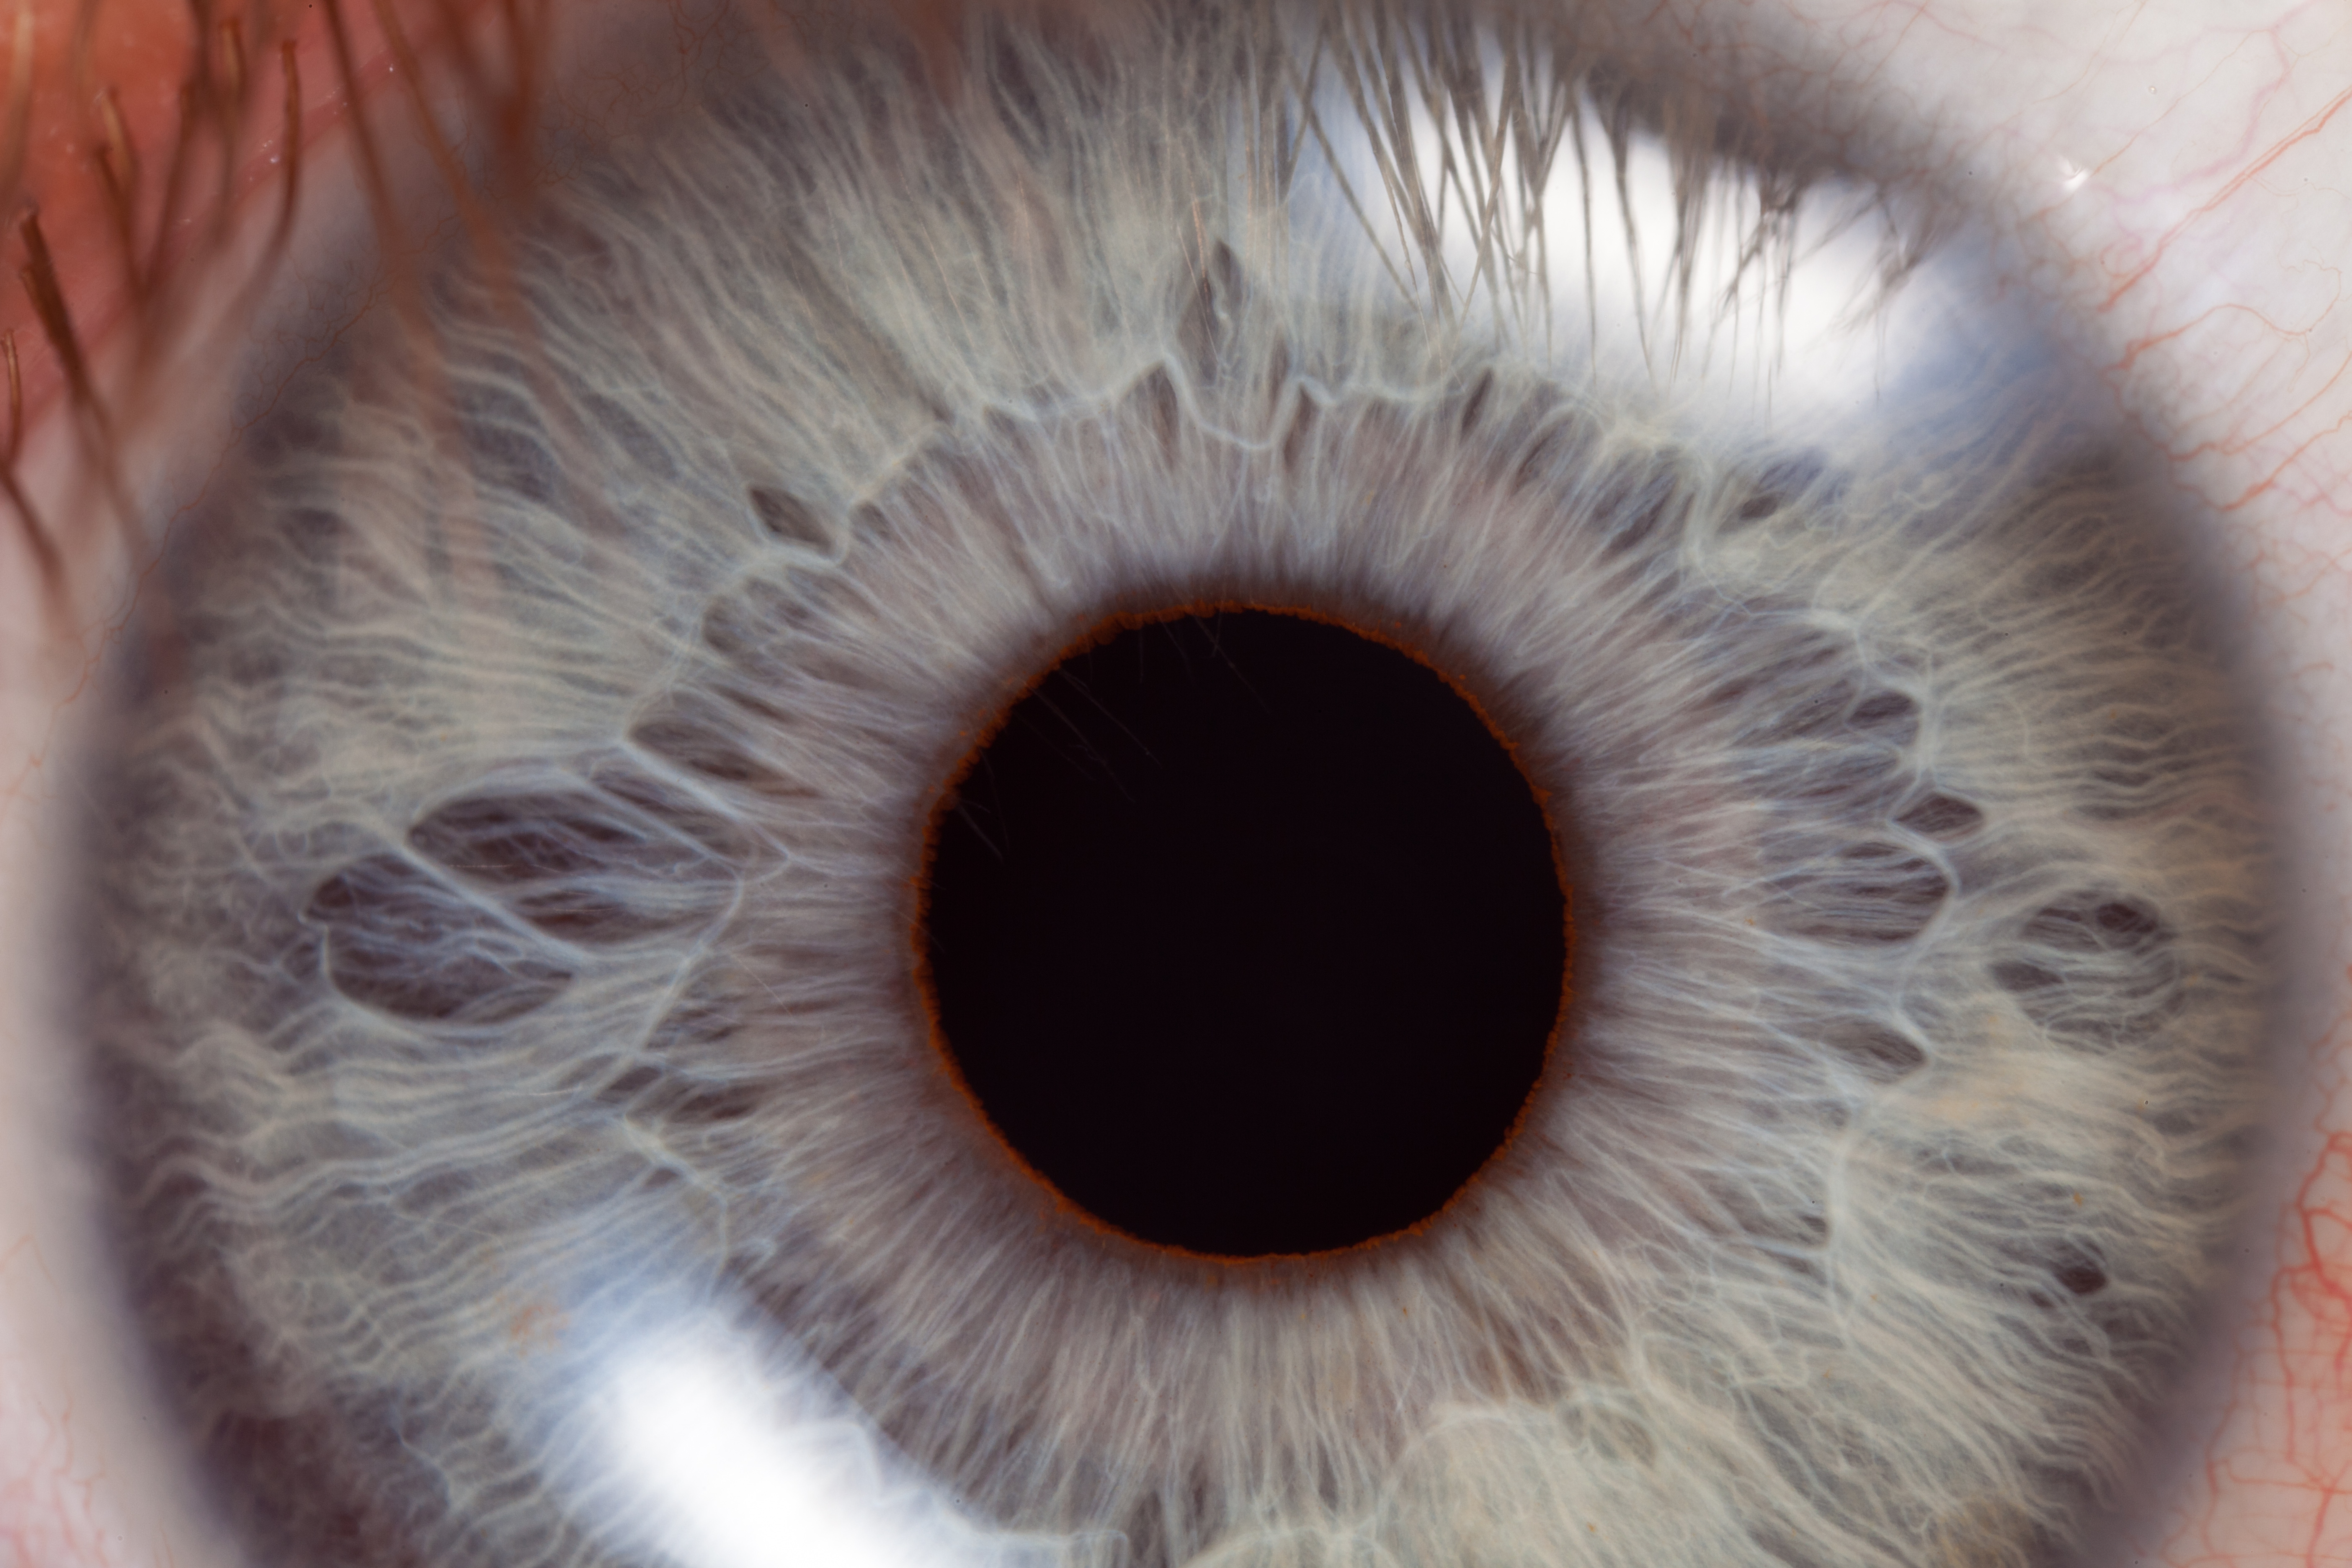 Stem cells could lead to new treatments for  eye disorders